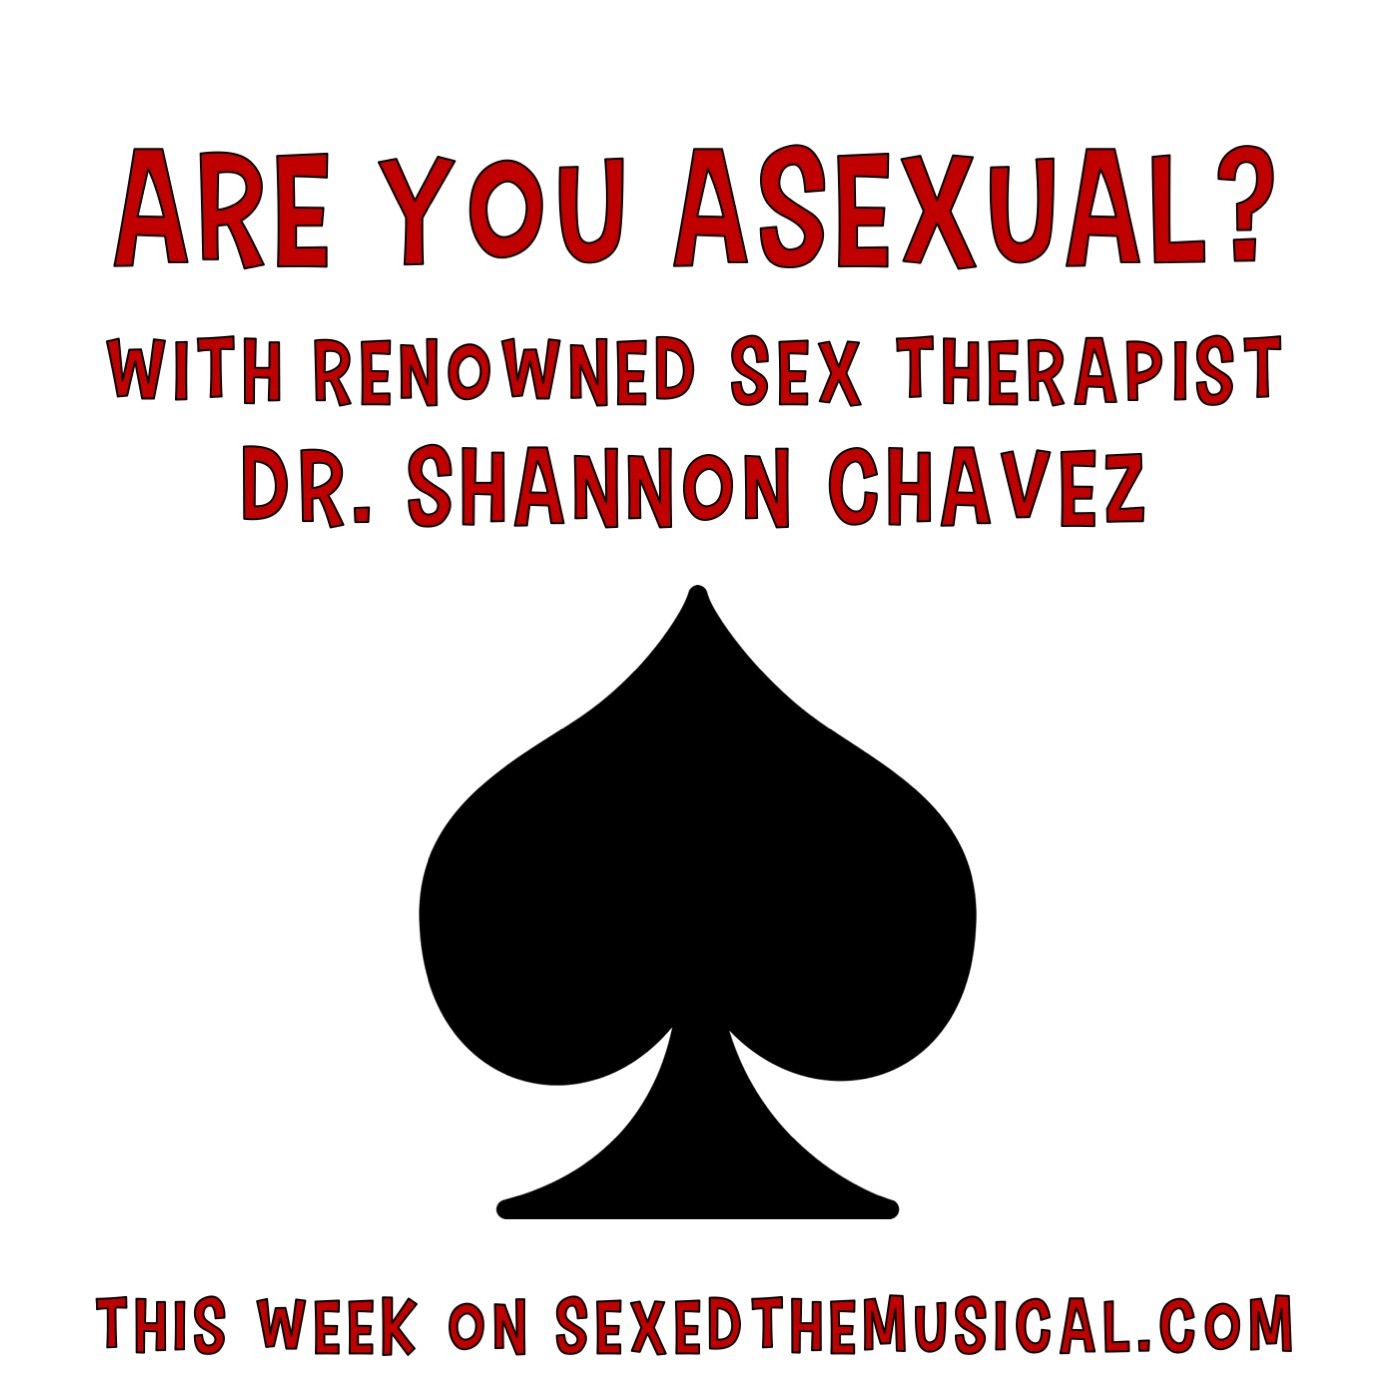 ARE YOU ASEXUAL -- WITH DR. SHANNON CHAVEZ